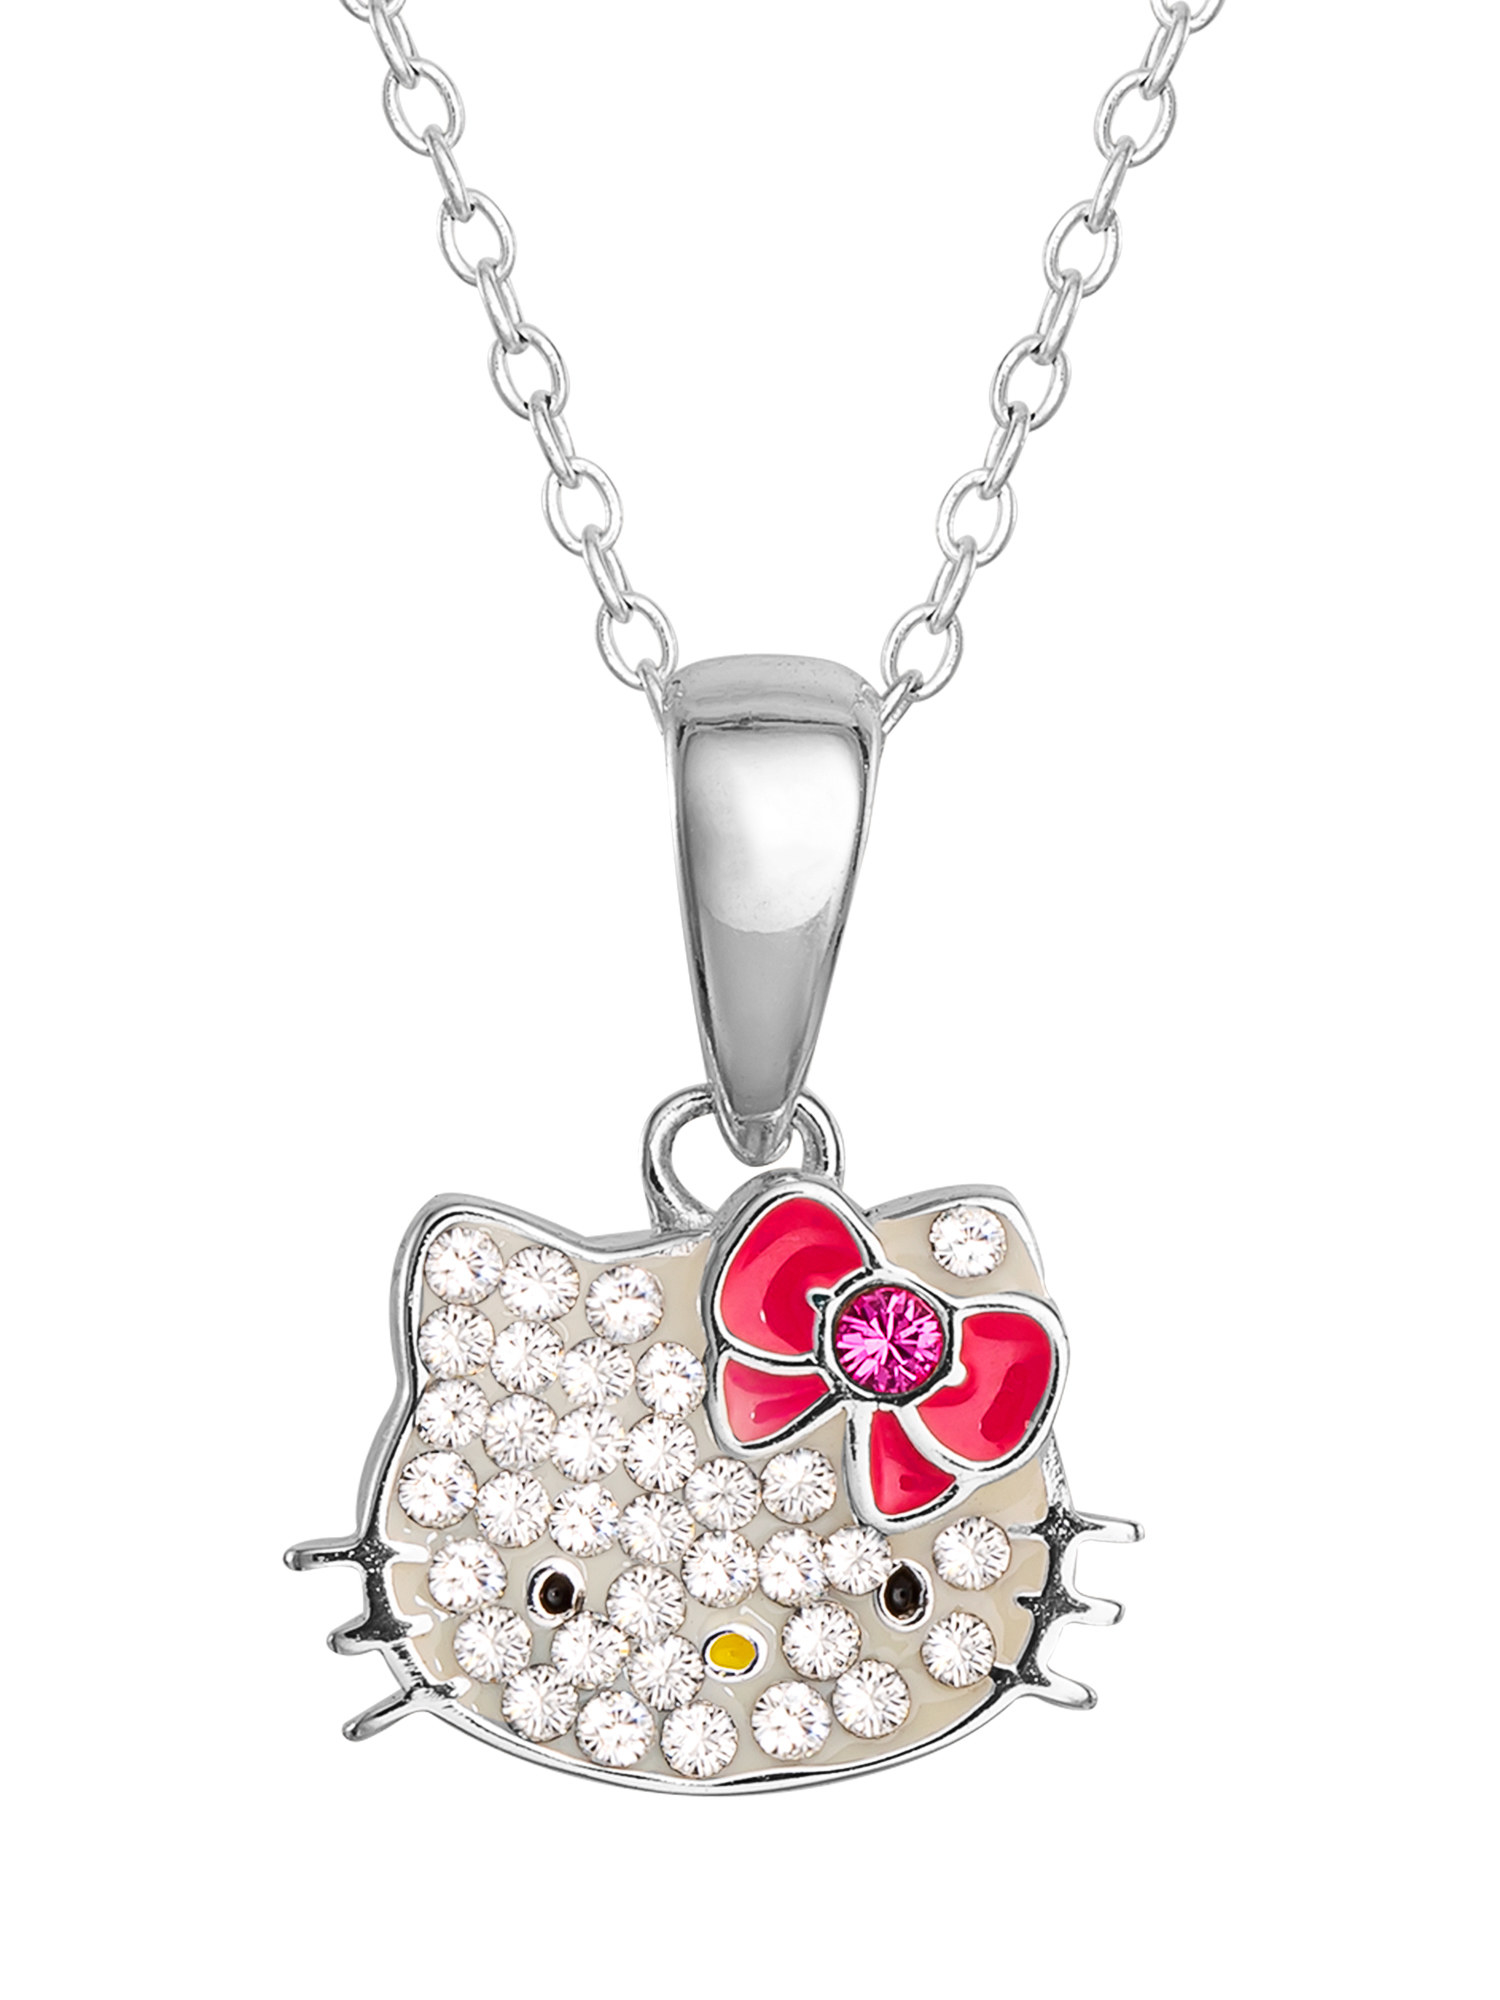 A silver Hello Kitty pendant with pink and yellow enamel, and pink and white rhinestones